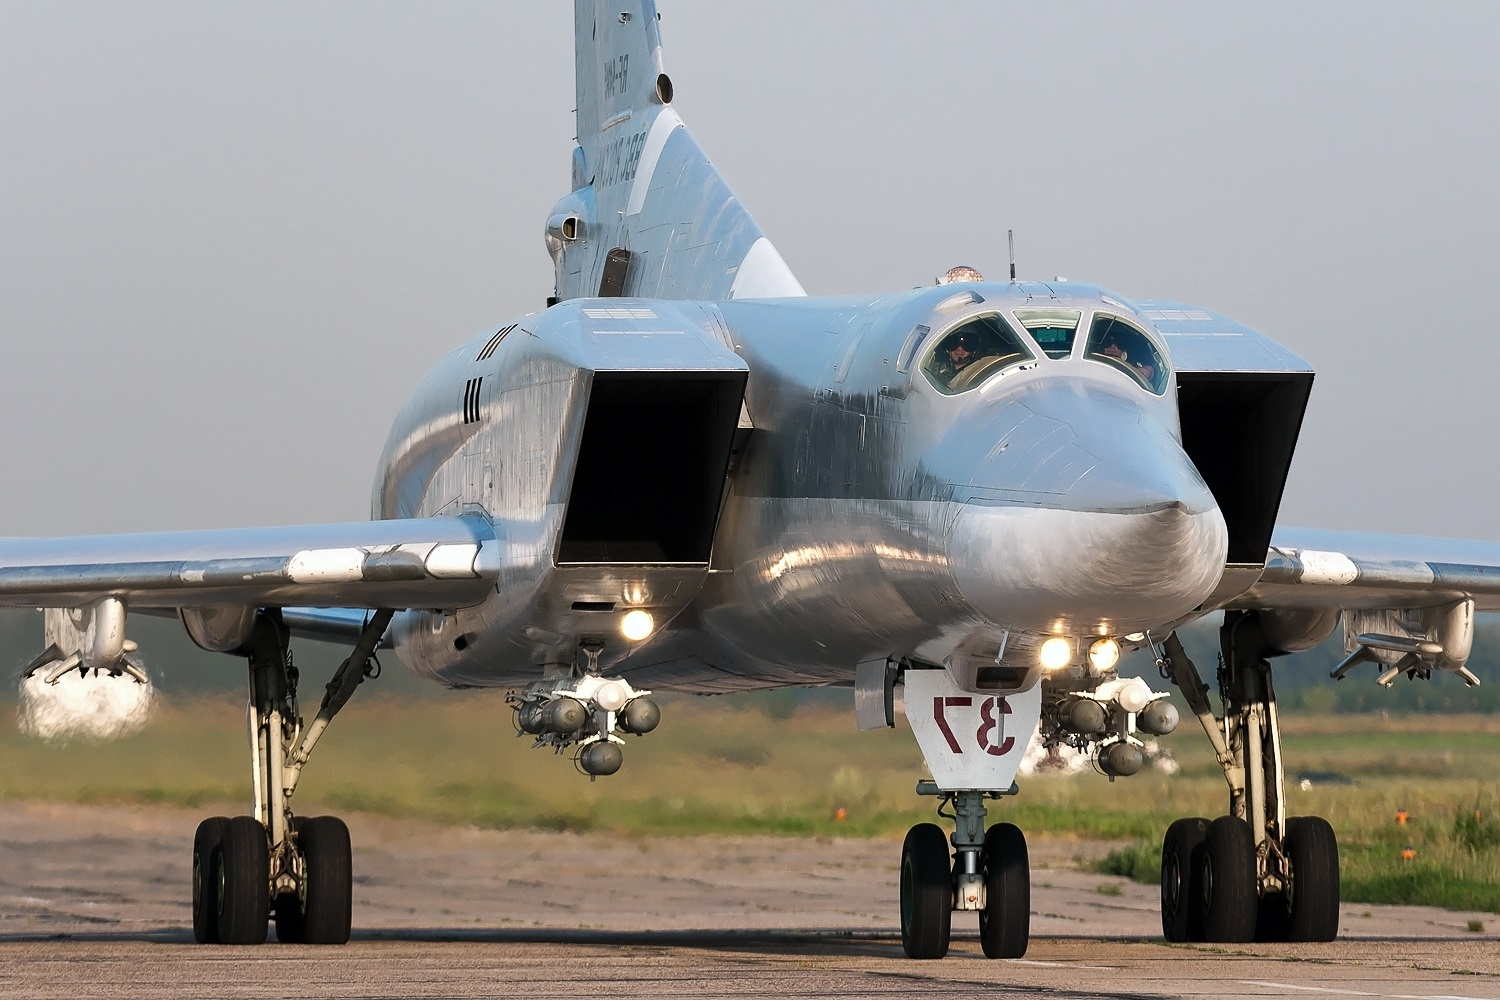 Russia Test-Launched Kinzhal Hypersonic Missile From Upgraded Tu-22M3M Bomber